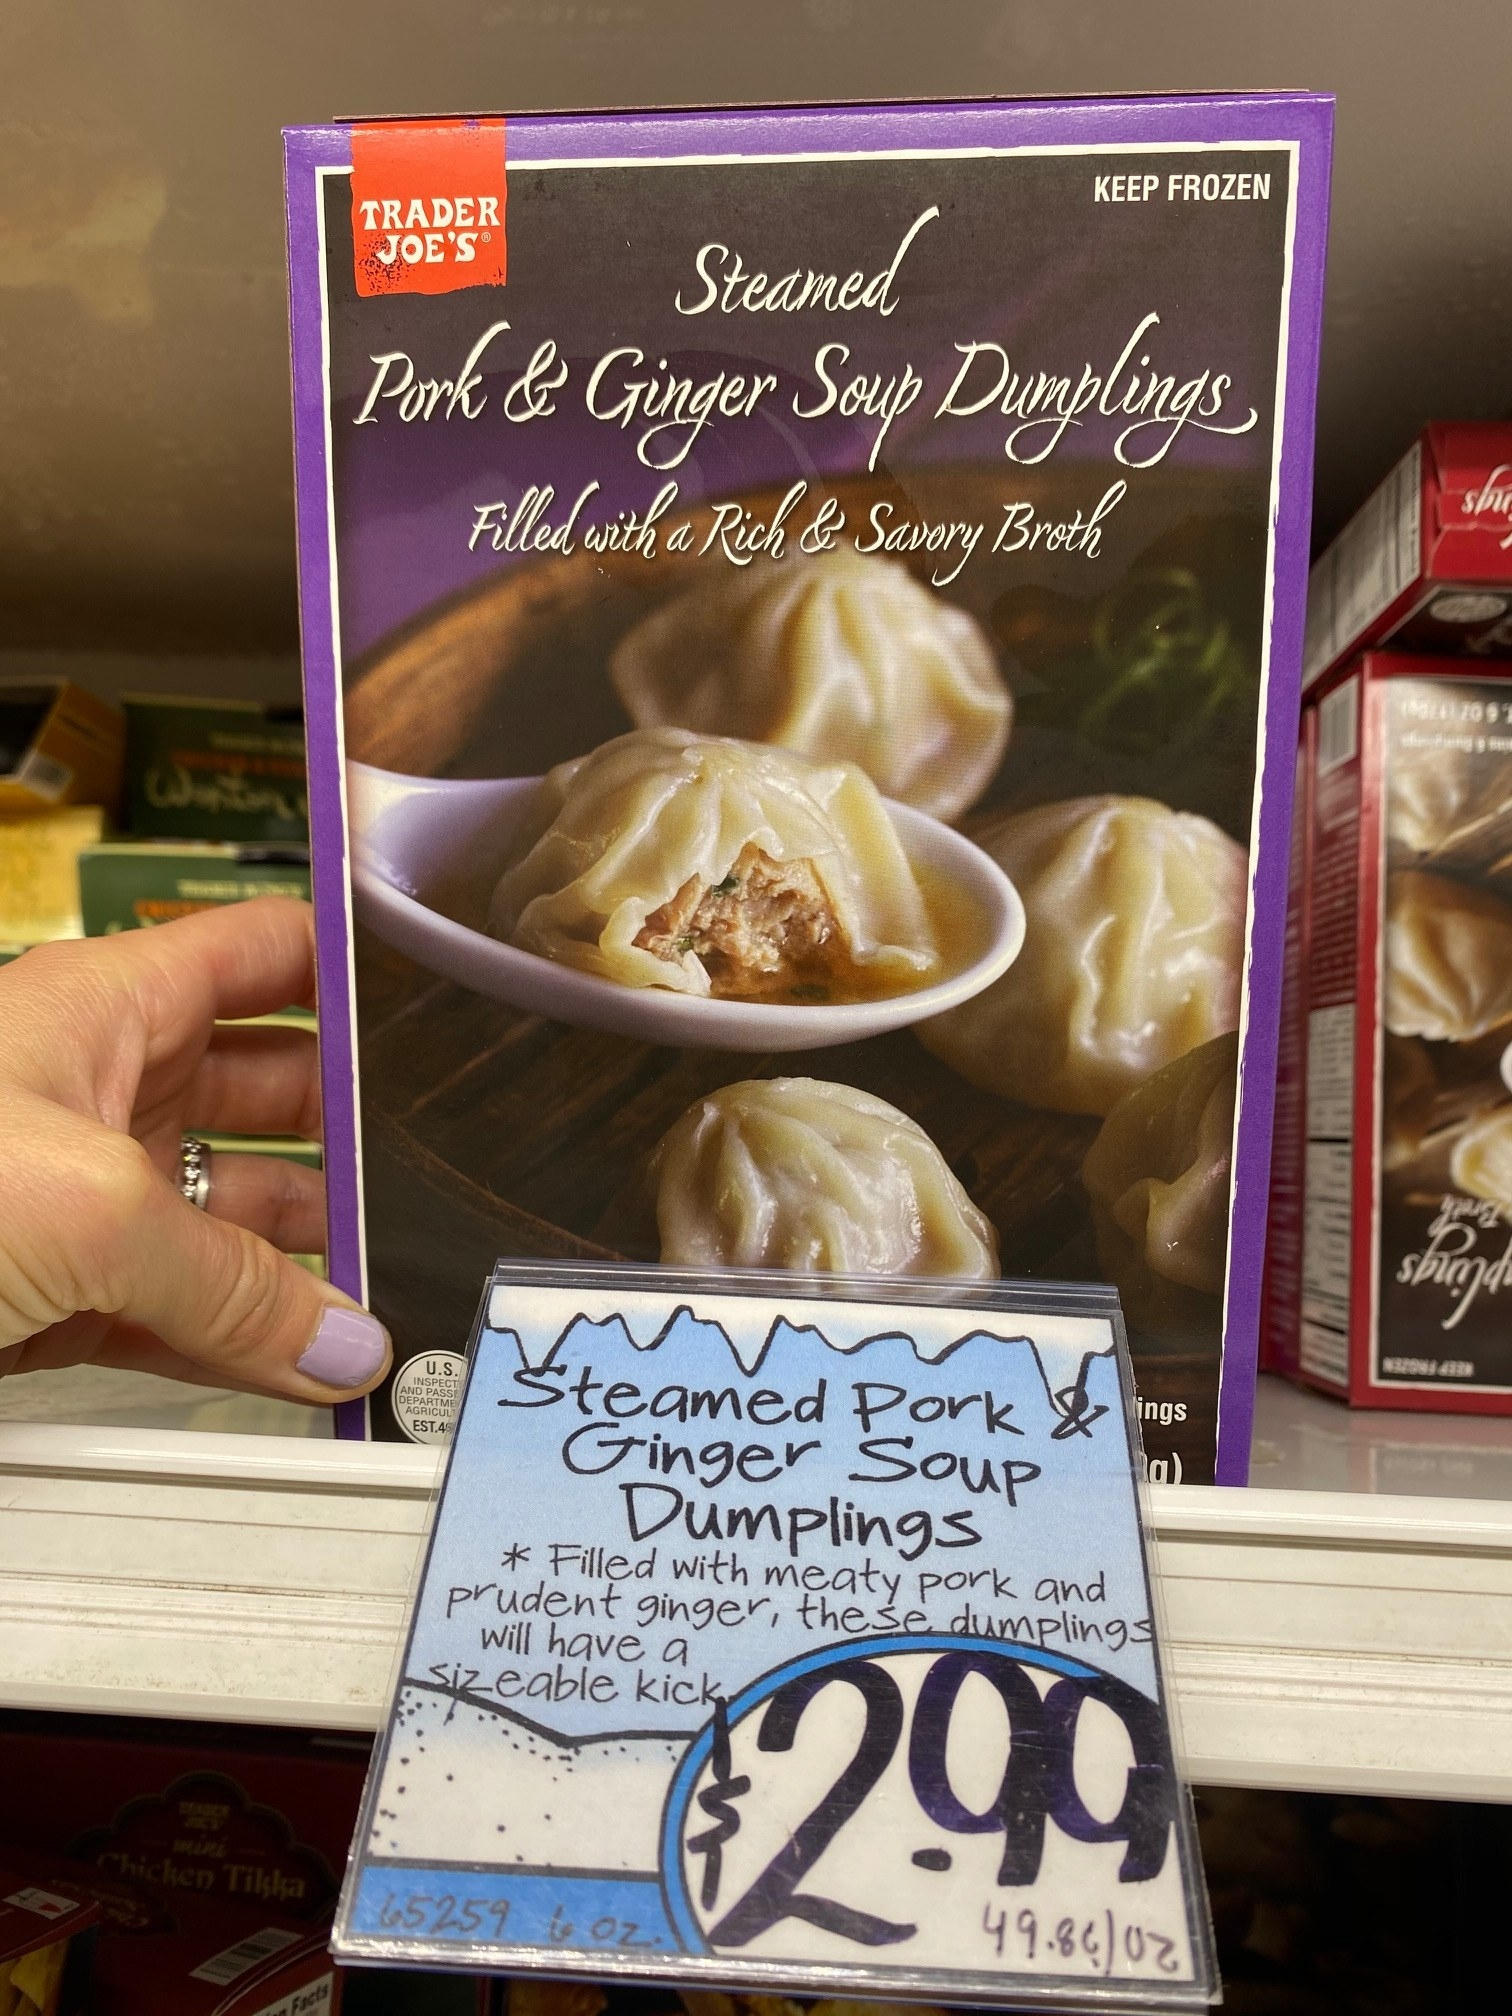 A box of frozen pork and ginger steamed soup dumplings from Trader Joe's,